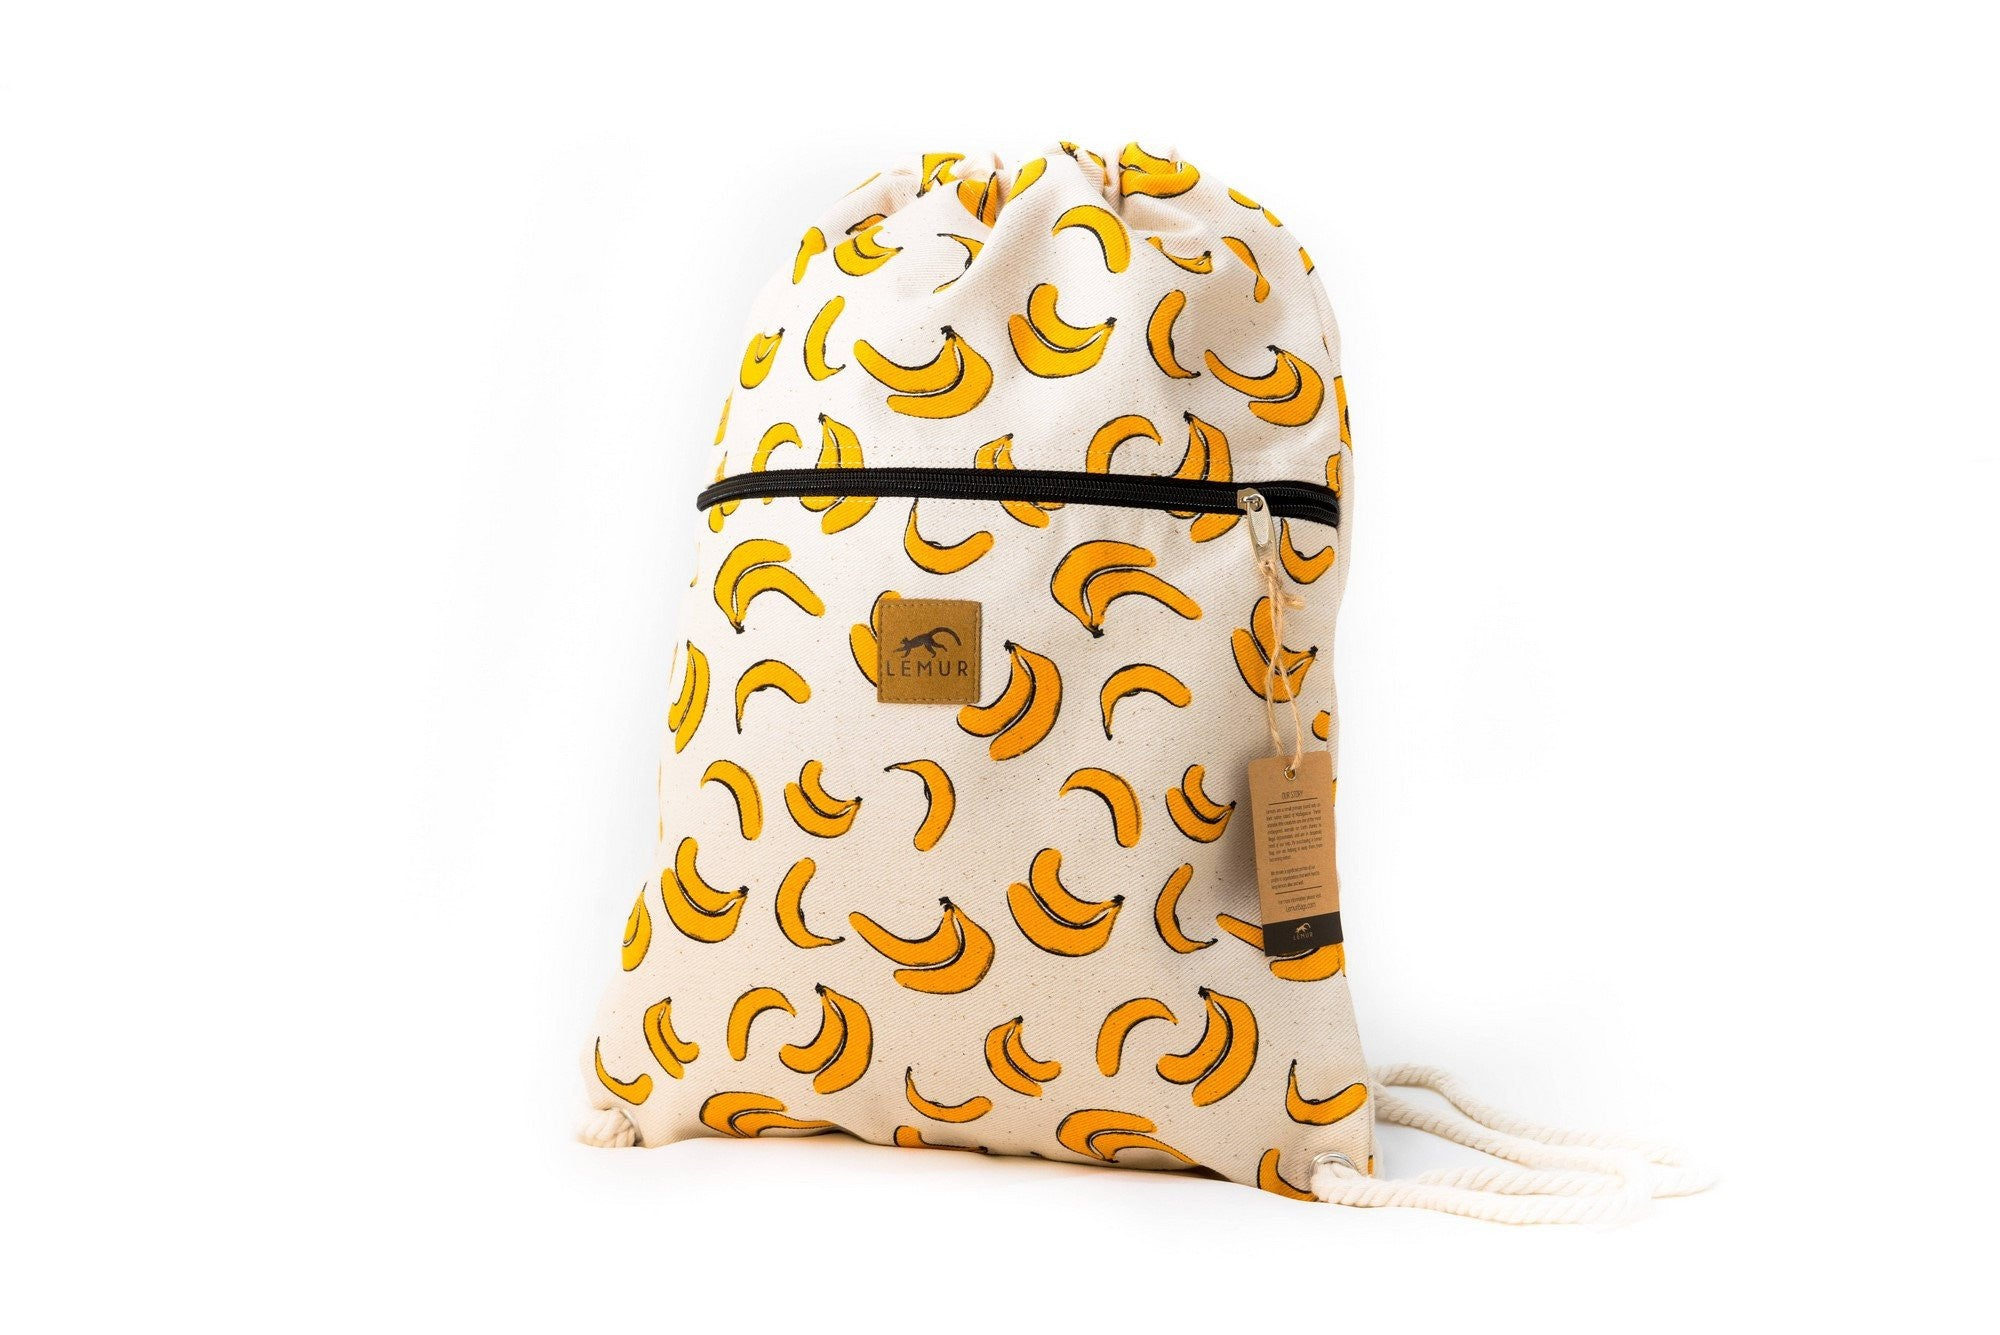 Drawstring Backpack - Drawstring Backpack - Canvas Cinch Daypack Sackpack By Lemur Bags (Bananas)